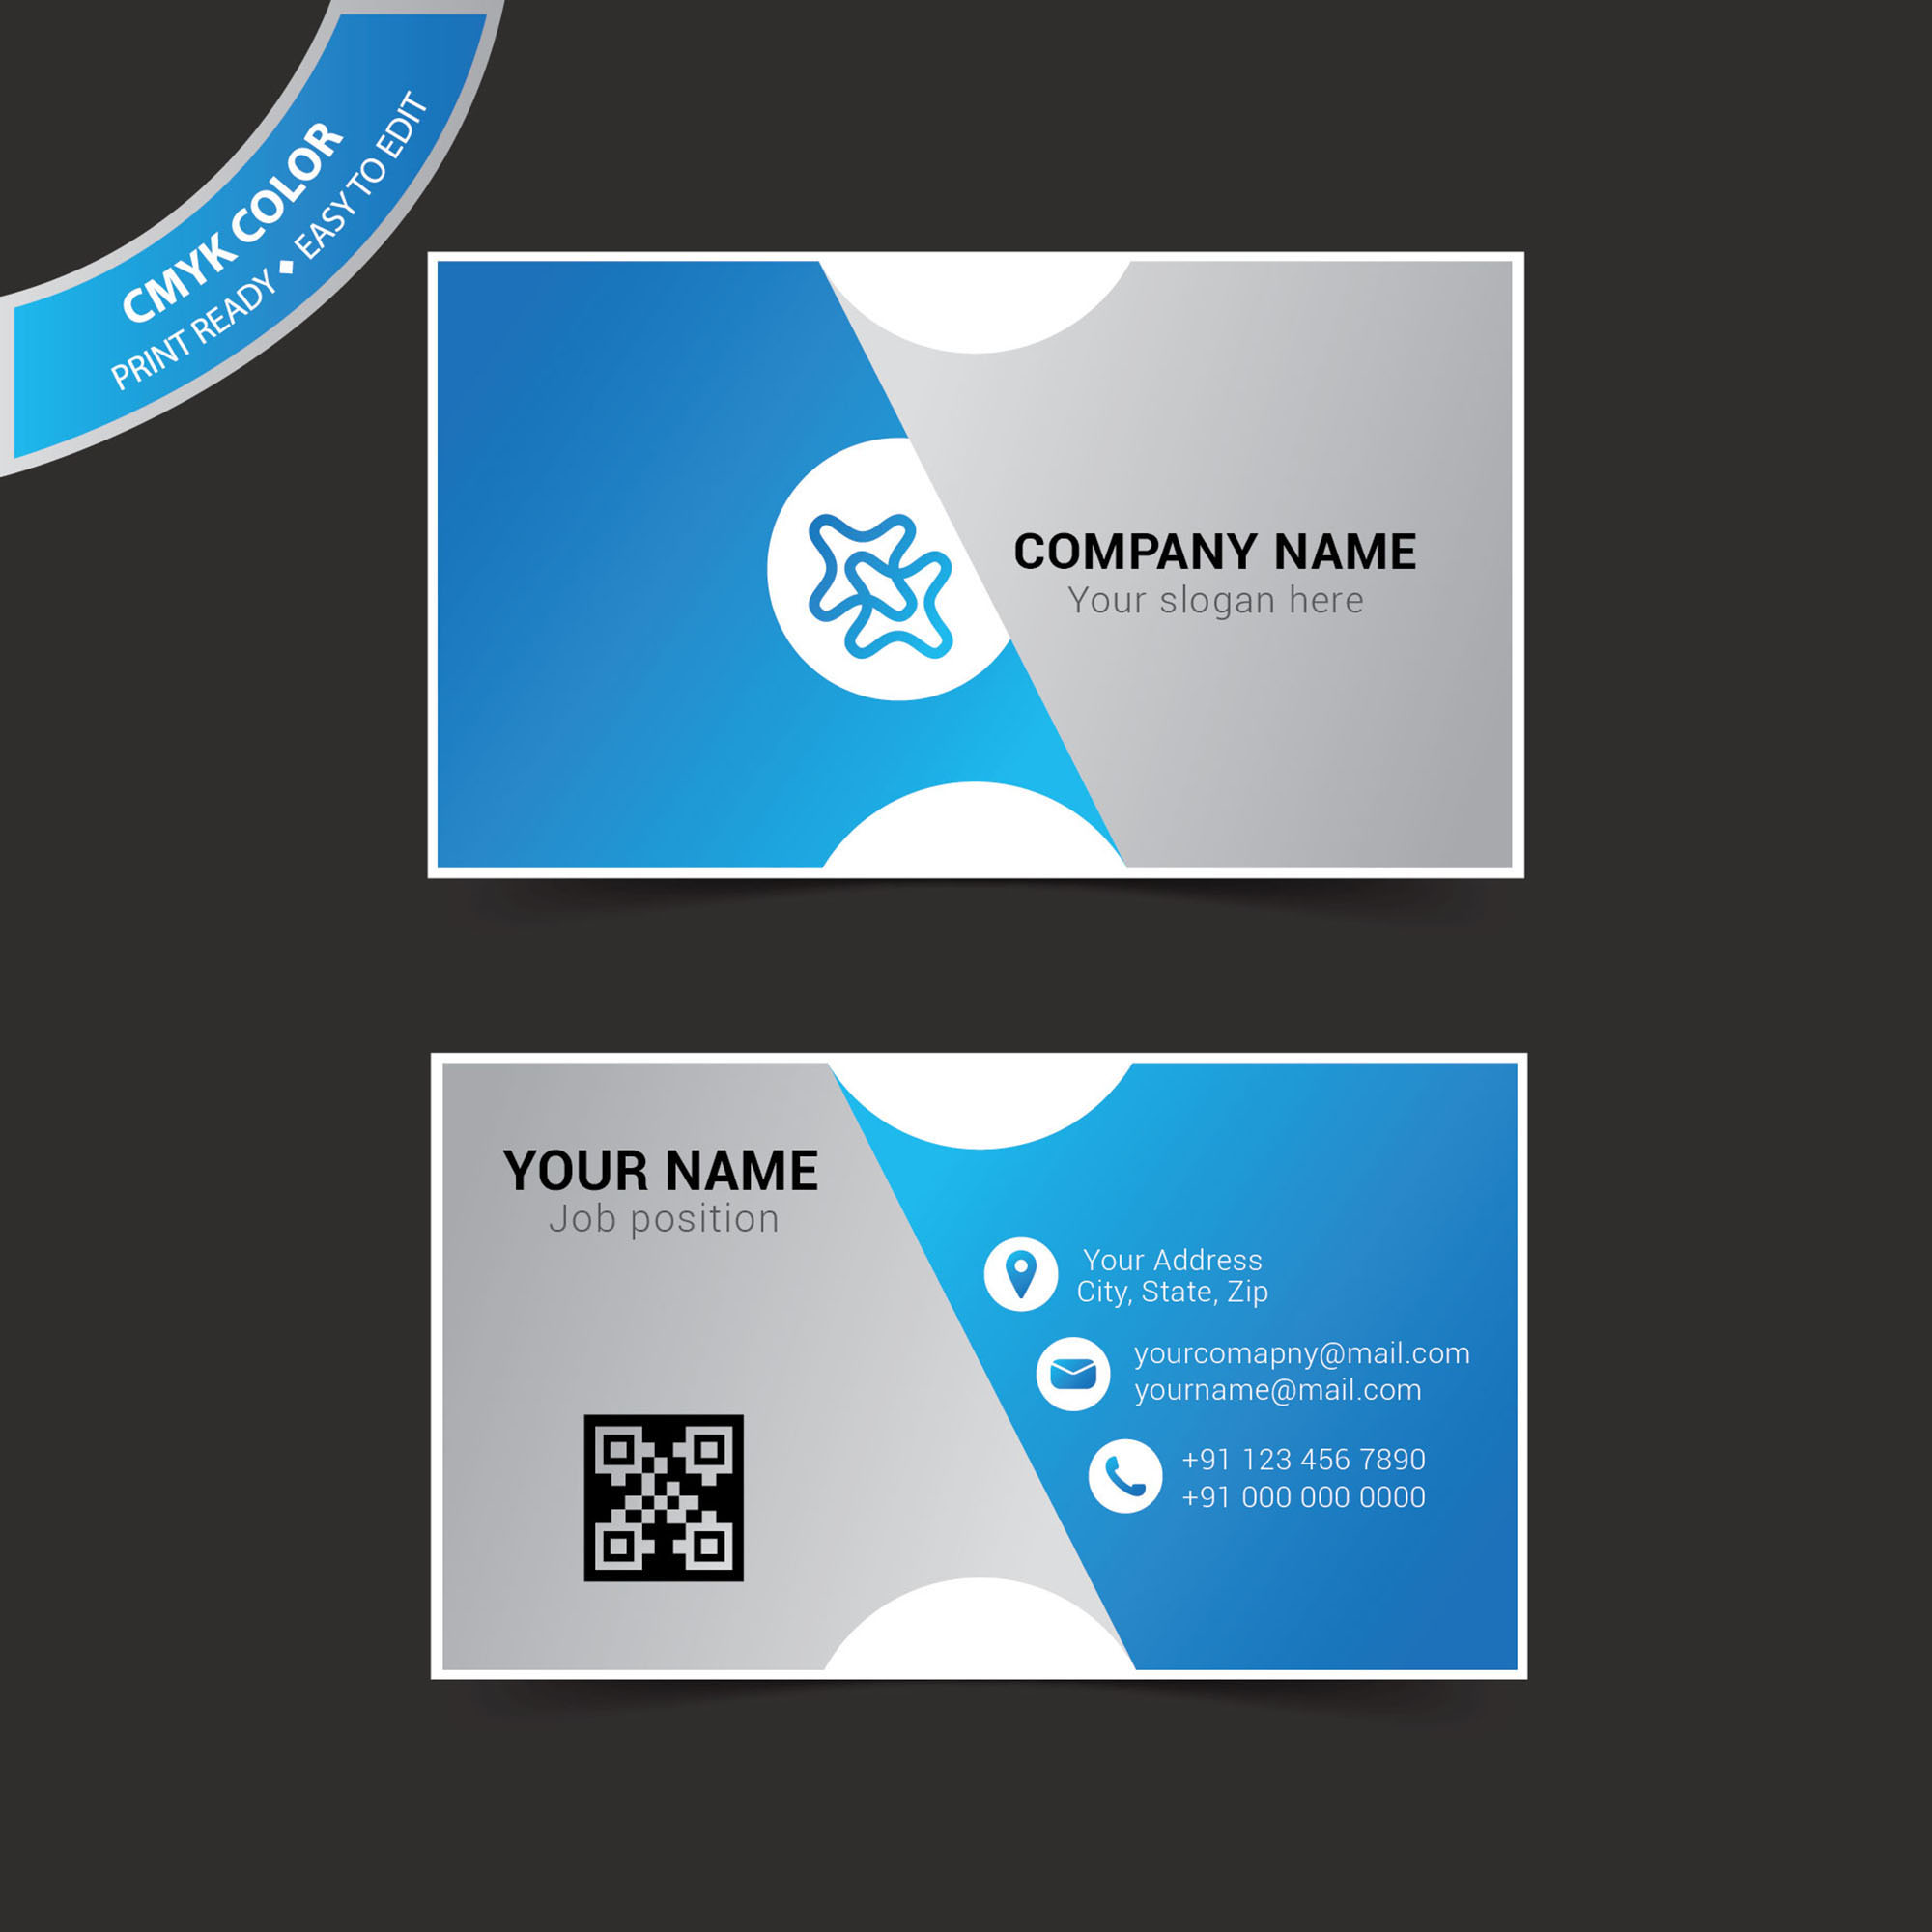 Business card template illustrator free vector wisxi abstract business card design business creative graphic layout template fbccfo Gallery